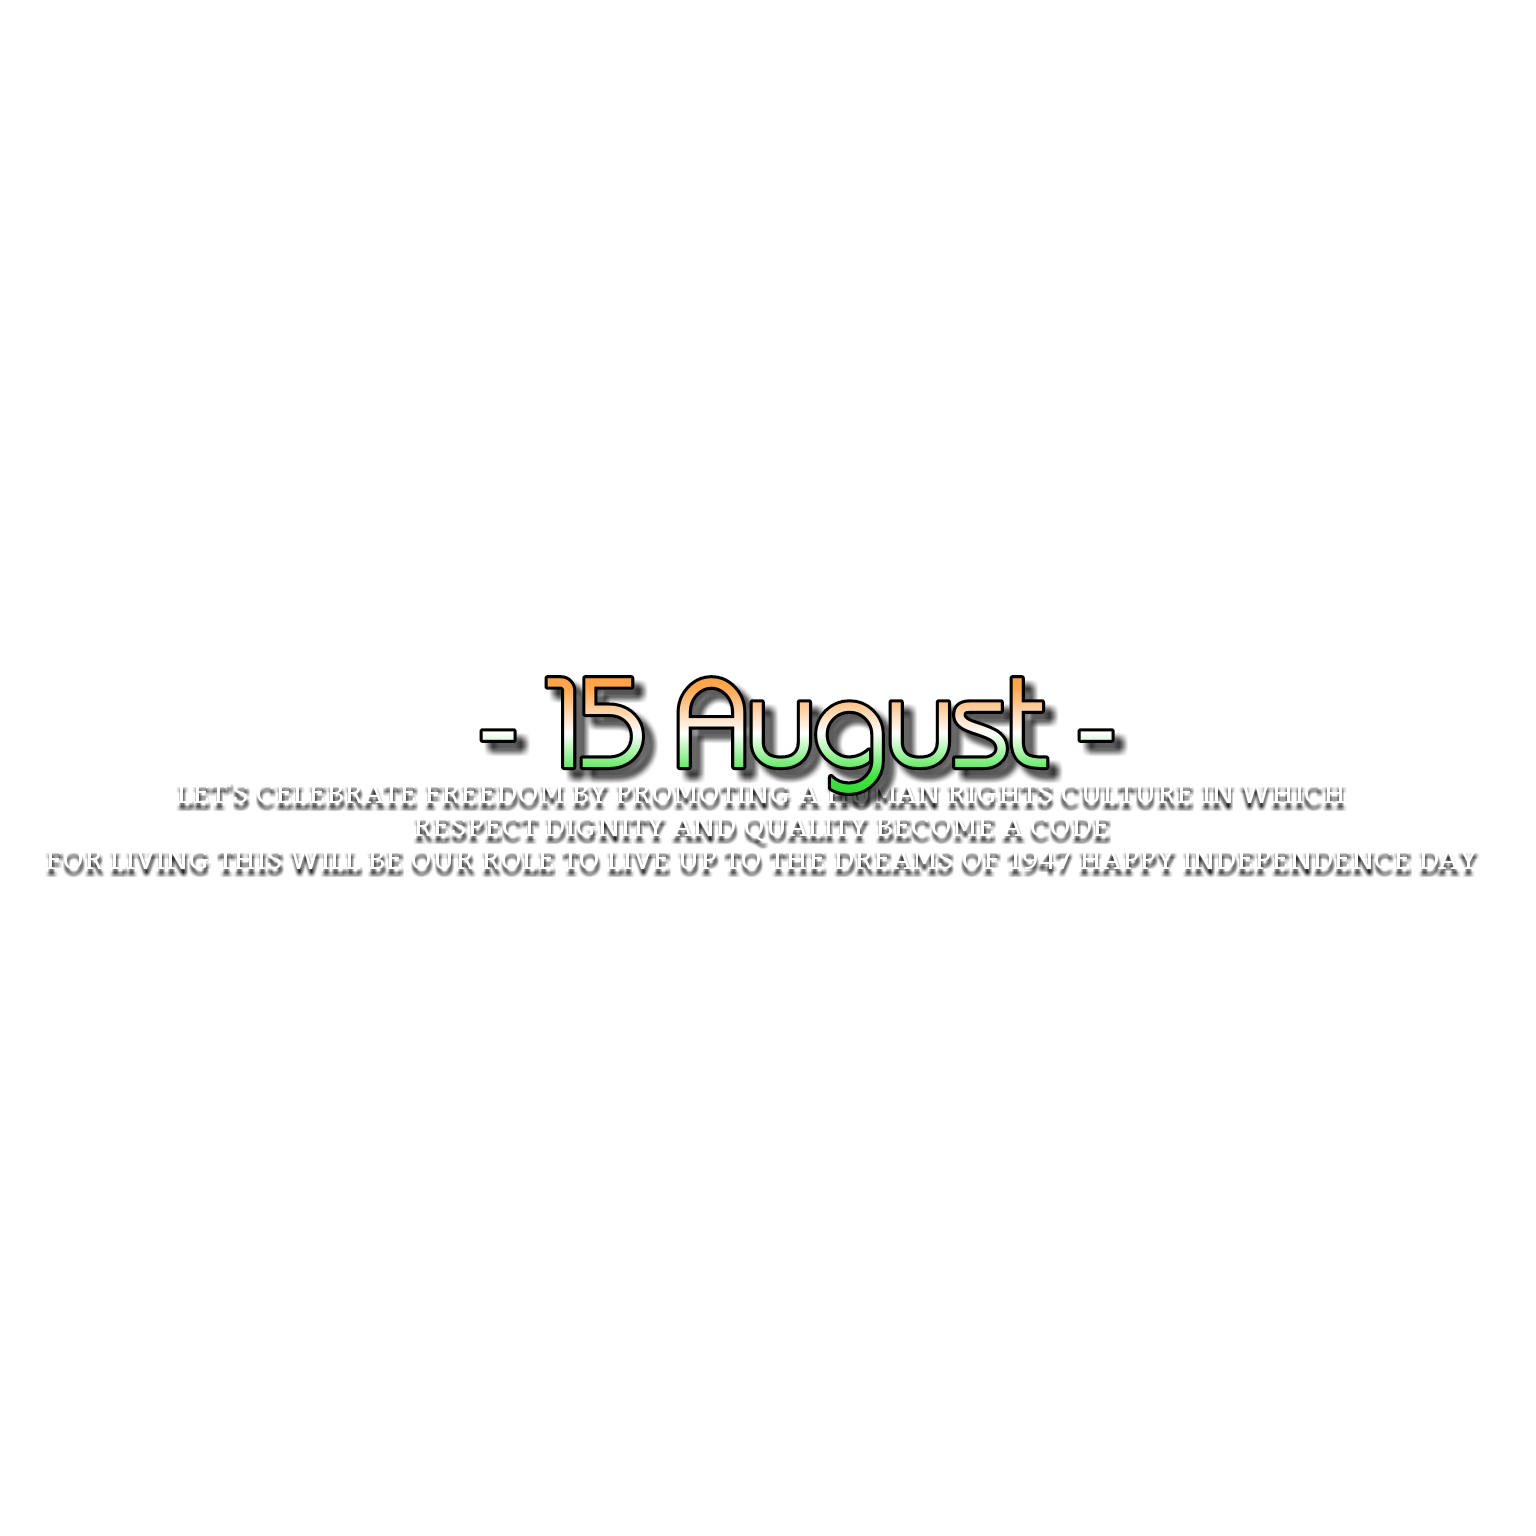 Nayan pal: HD TEXT PNG FOR 15 AUGUST ♥.